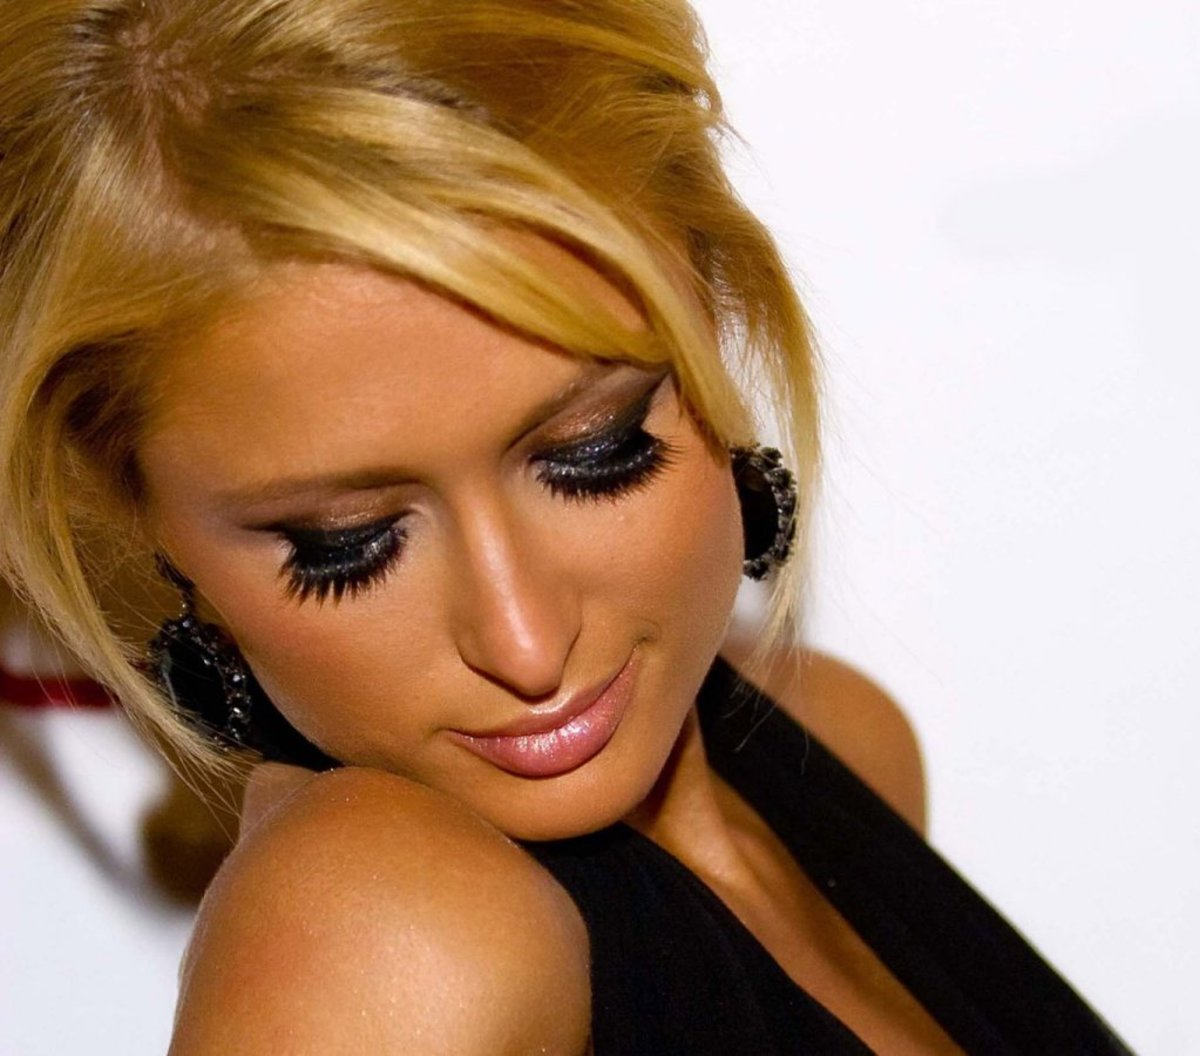 Paris Hilton gained notoriety after multiple drinking and drug offences, not to mention the sex tape and other topless pictures